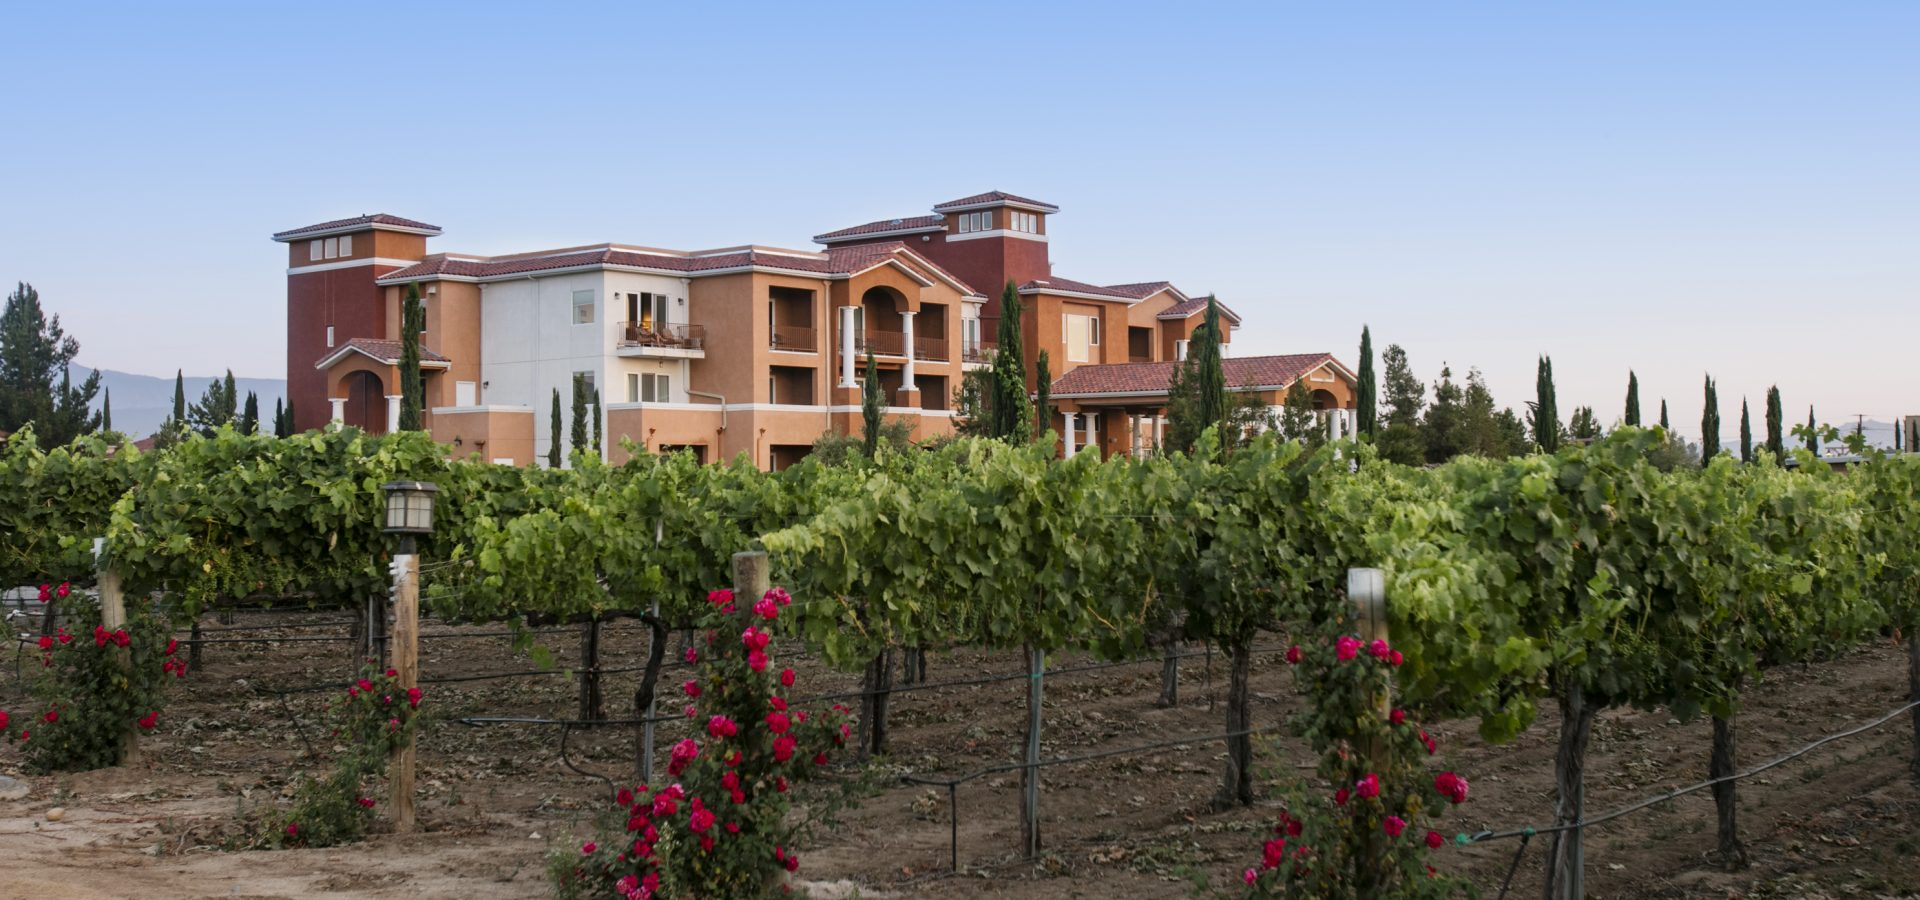 wine vineyards in front of our Temecula luxury resort and spa